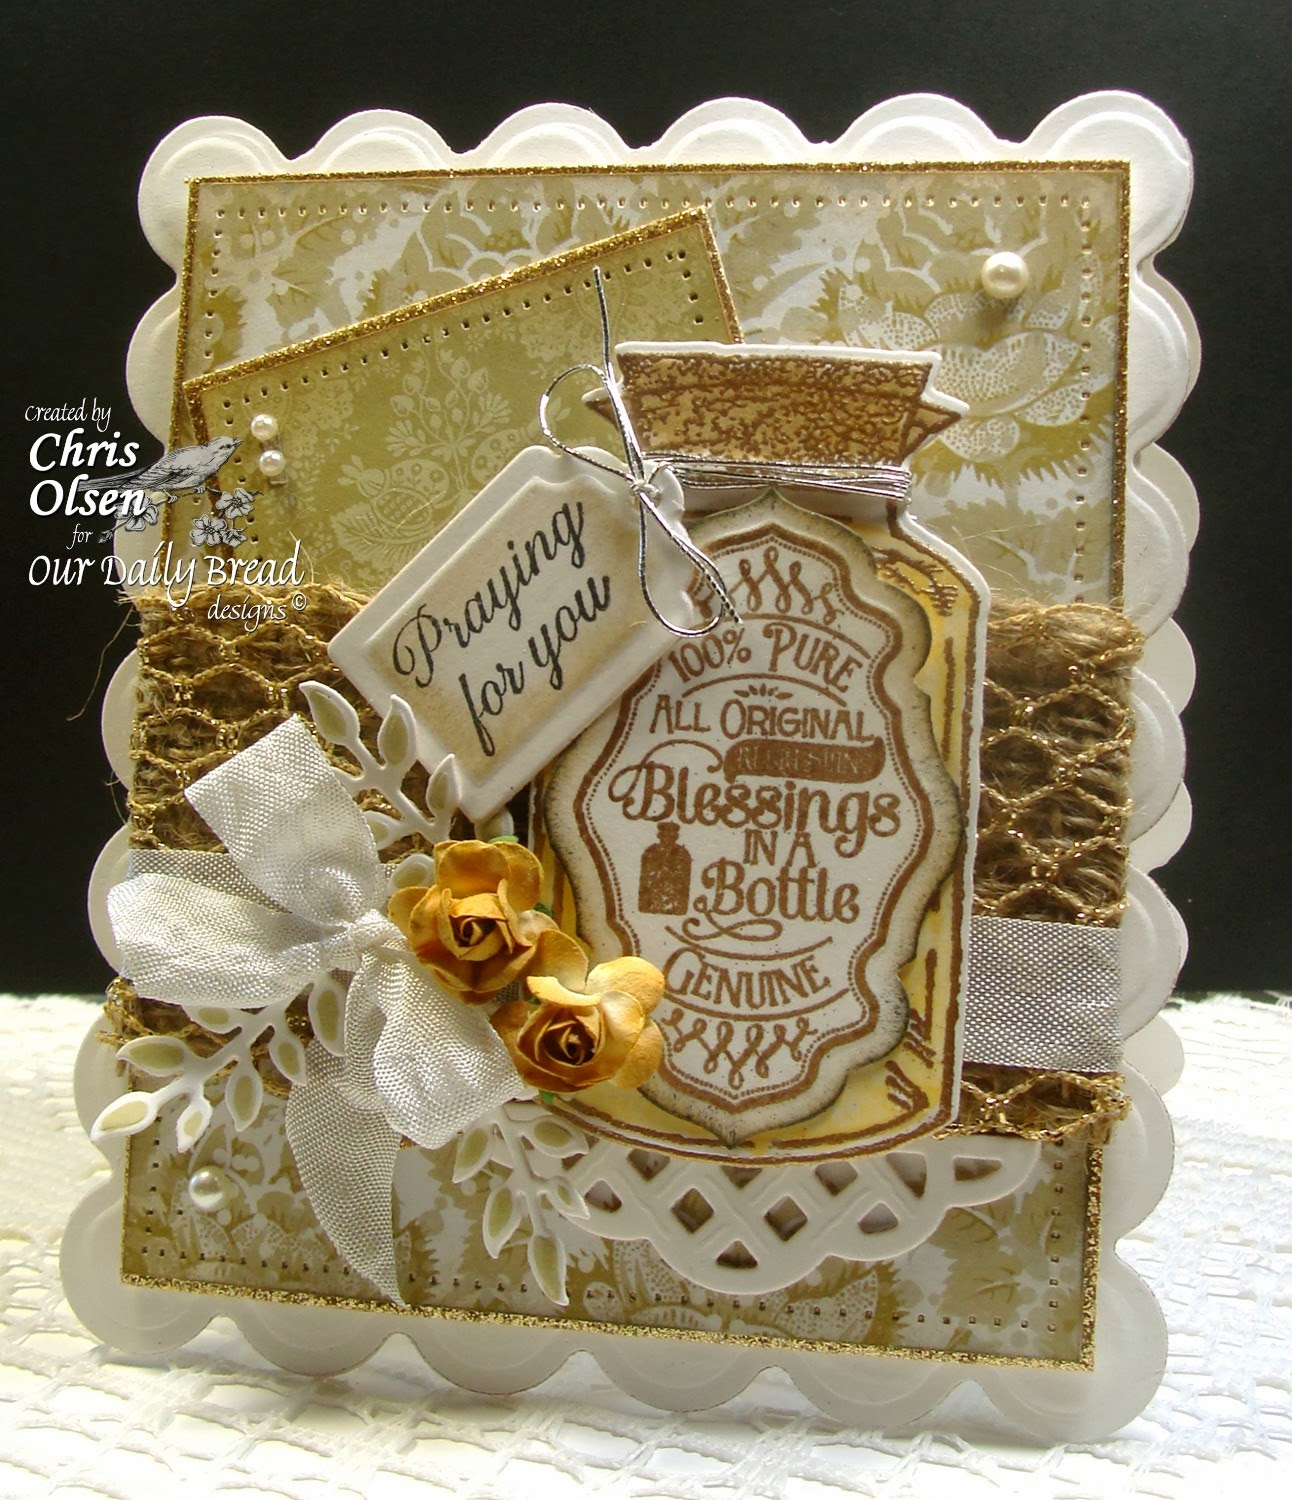 Our Daily Bread Designs, Apothecary Bottles, Joy in a Jar, Ornate Border Sentiments, Apothecary Bottles, Antique Labels and Borders, Recipe and Tags Die, Chris Olsen